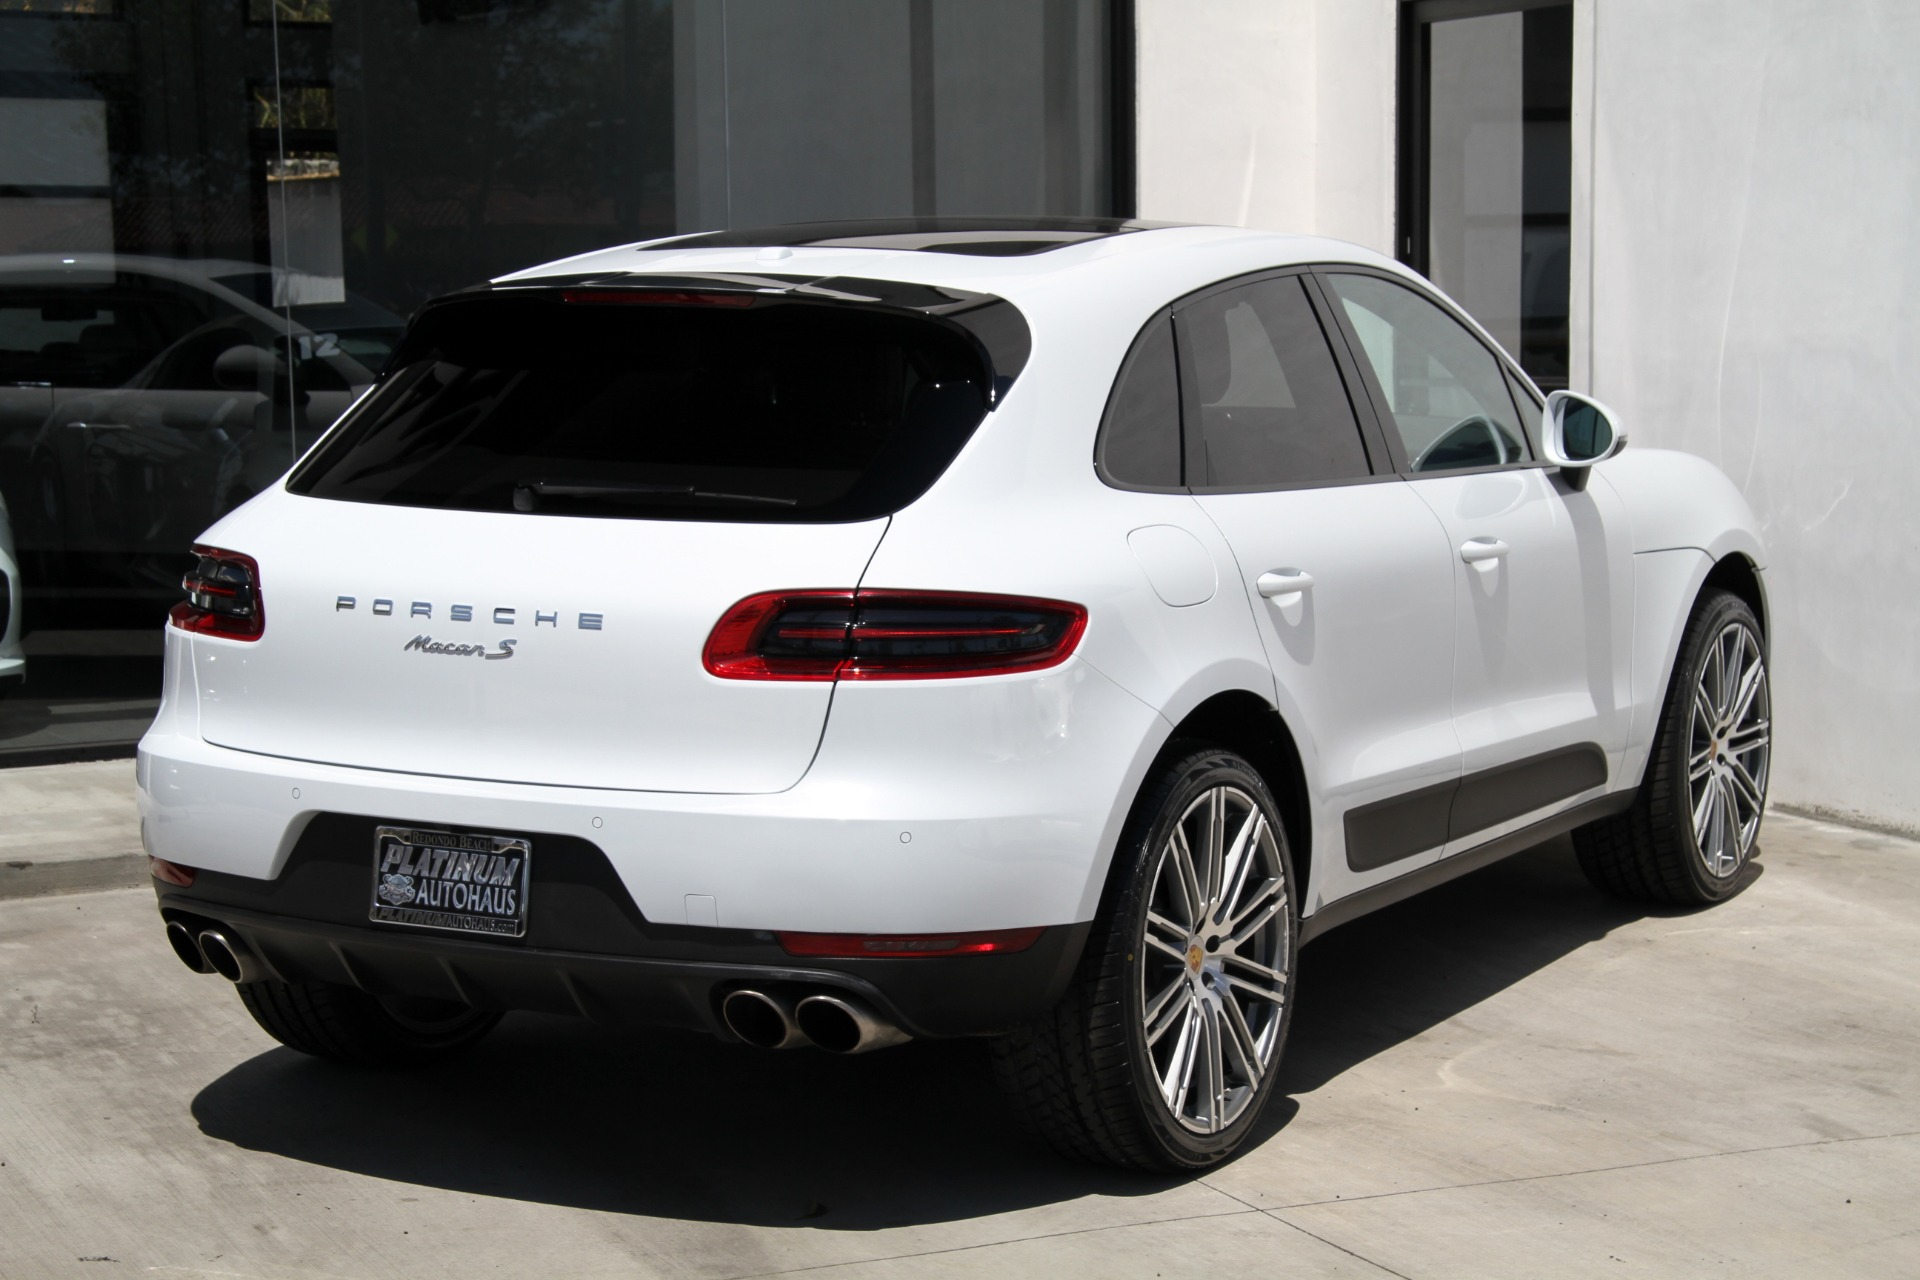 Used Suv For Sale Near Me >> 2017 Porsche Macan S Stock # 6192 for sale near Redondo ...